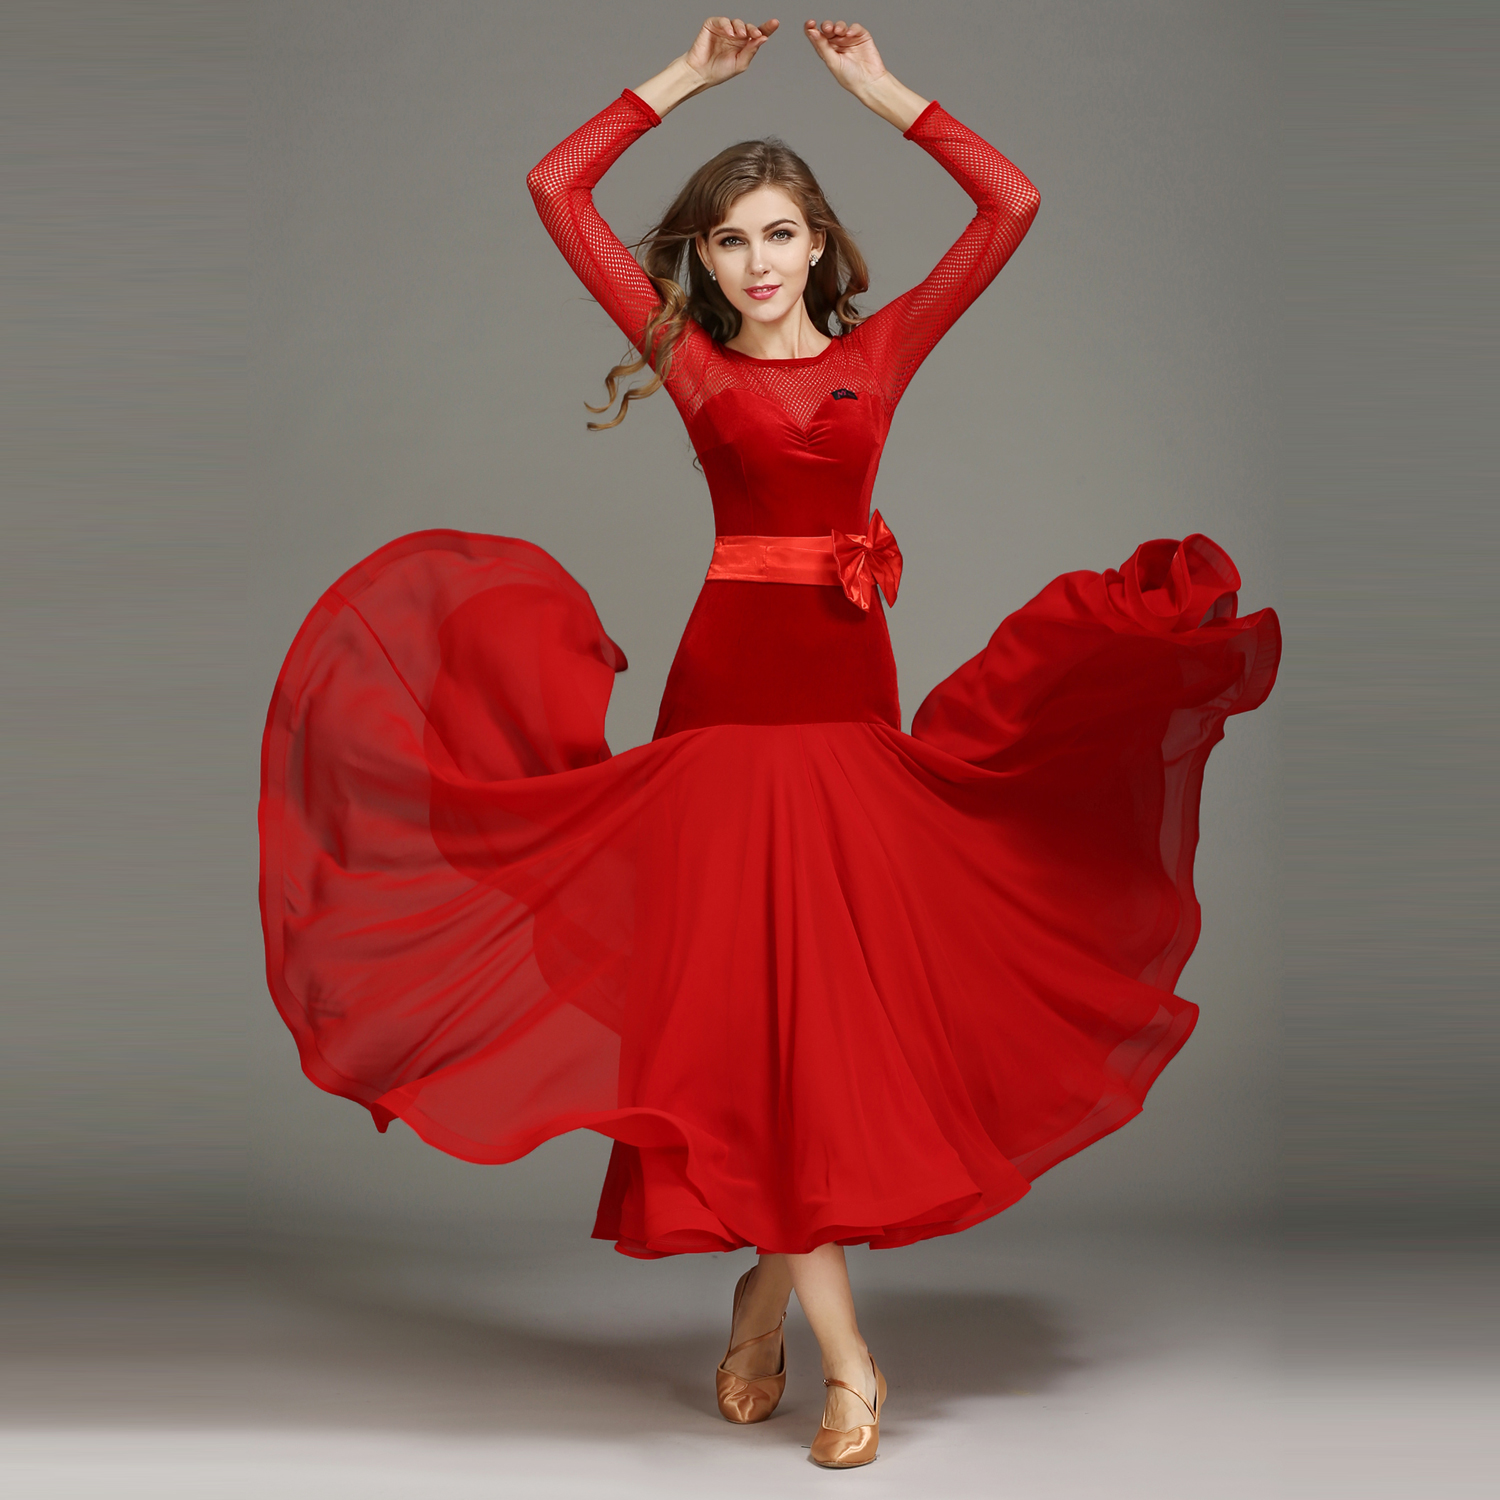 Modern Dance Costume Women Lady Adult Waltzing Tango Bow Dancing Dress Ballroom Costume Evening Party Dress спот lussole abruzzi lsl 7901 02